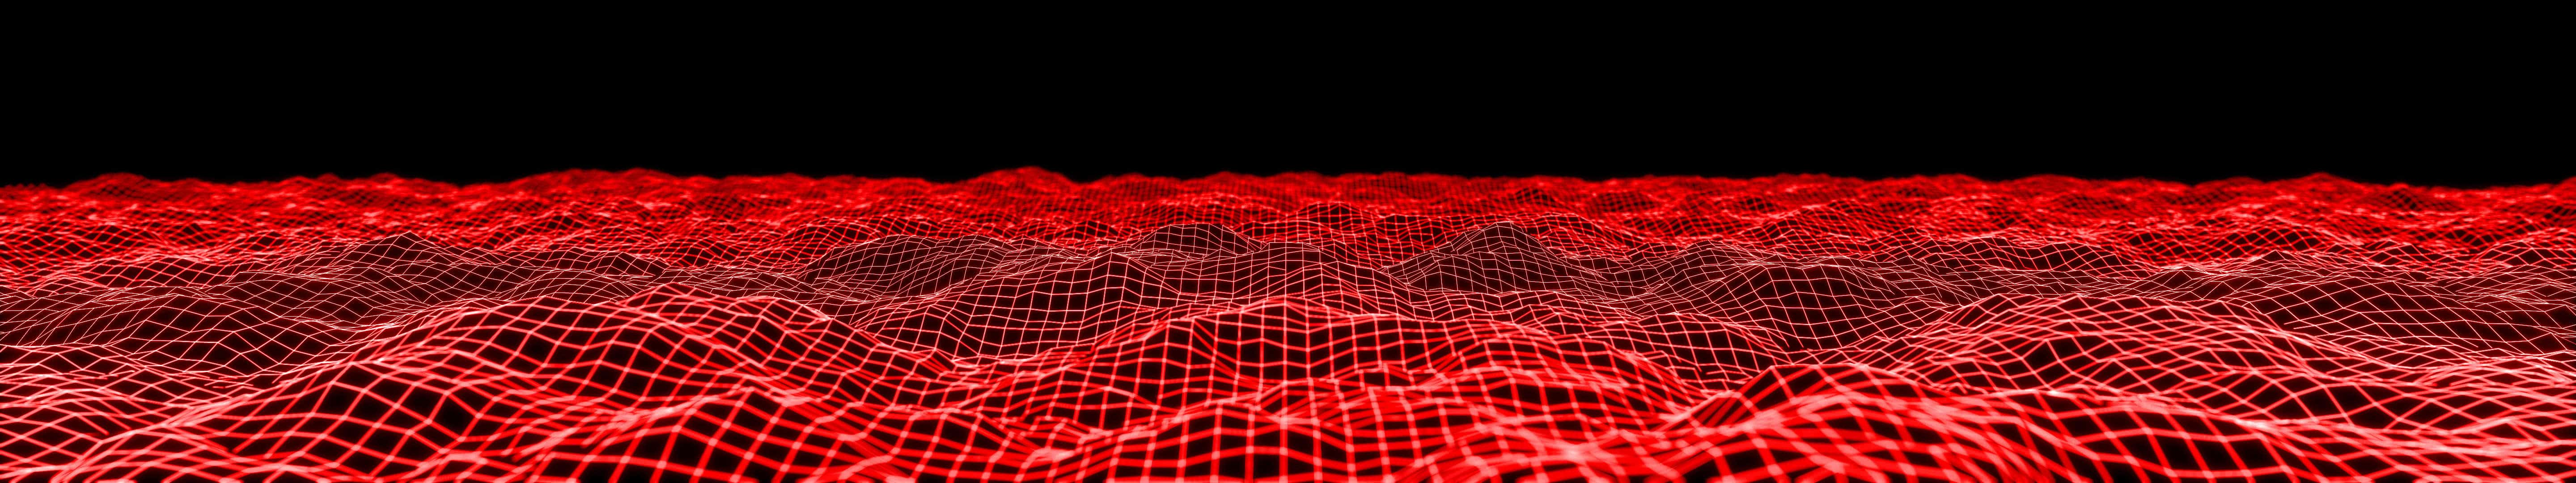 wavy mesh red triple monitor wallpaper`